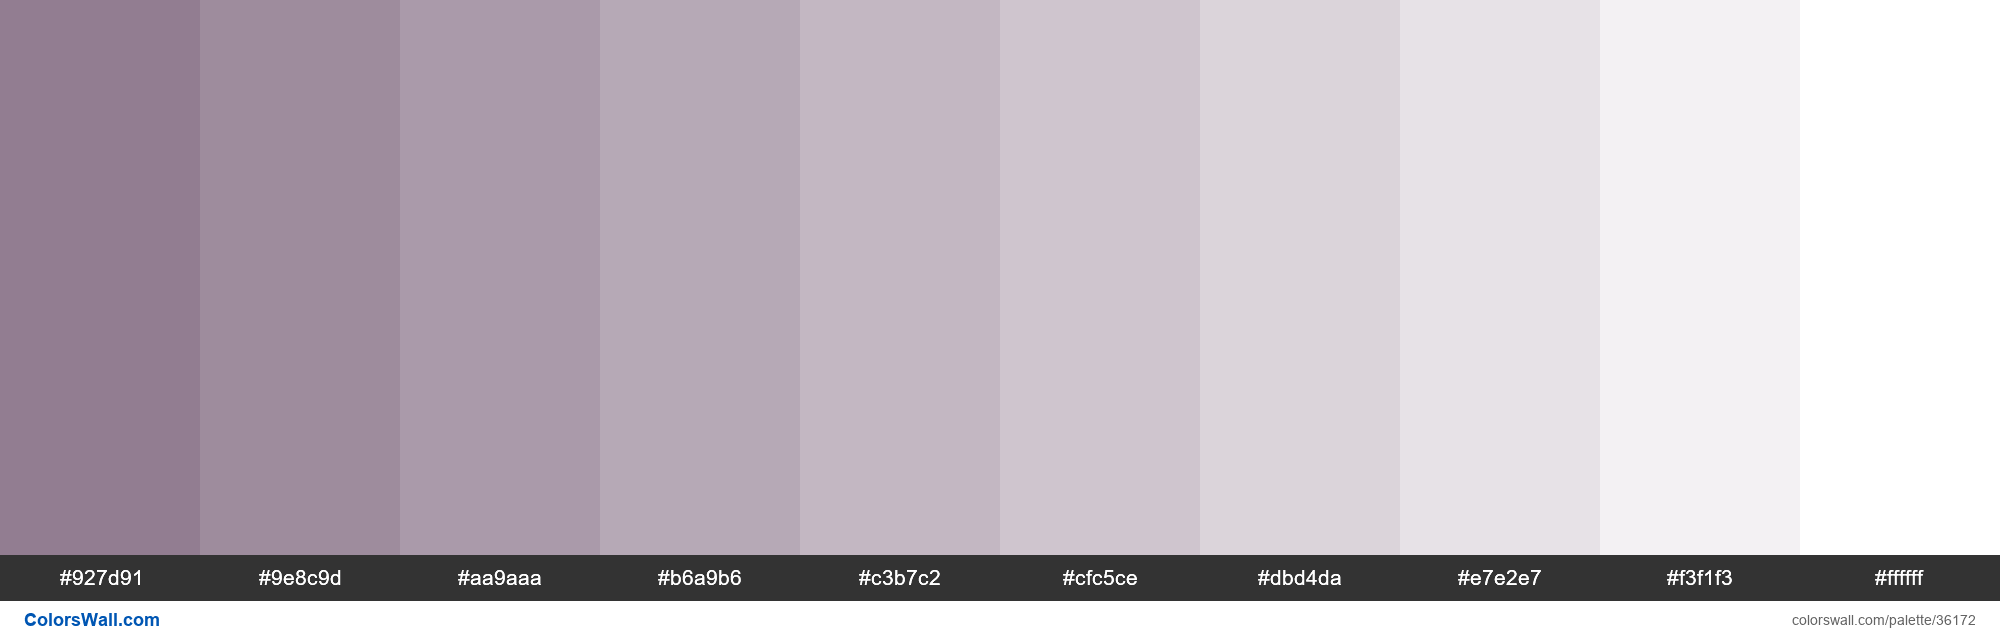 Tints XKCD Color purple grey #866f85 hex - #36172